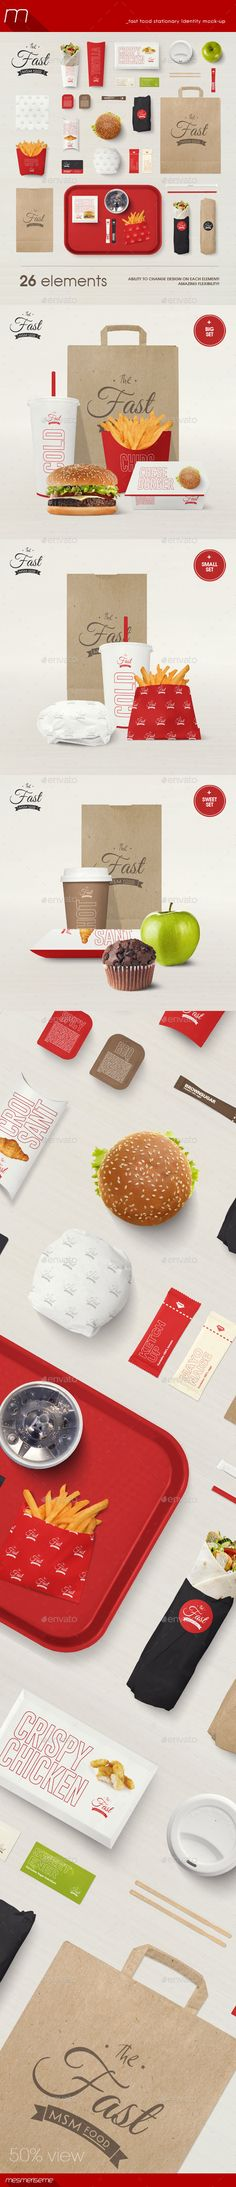 85 Best Burger design images in 2017 | Burger branding